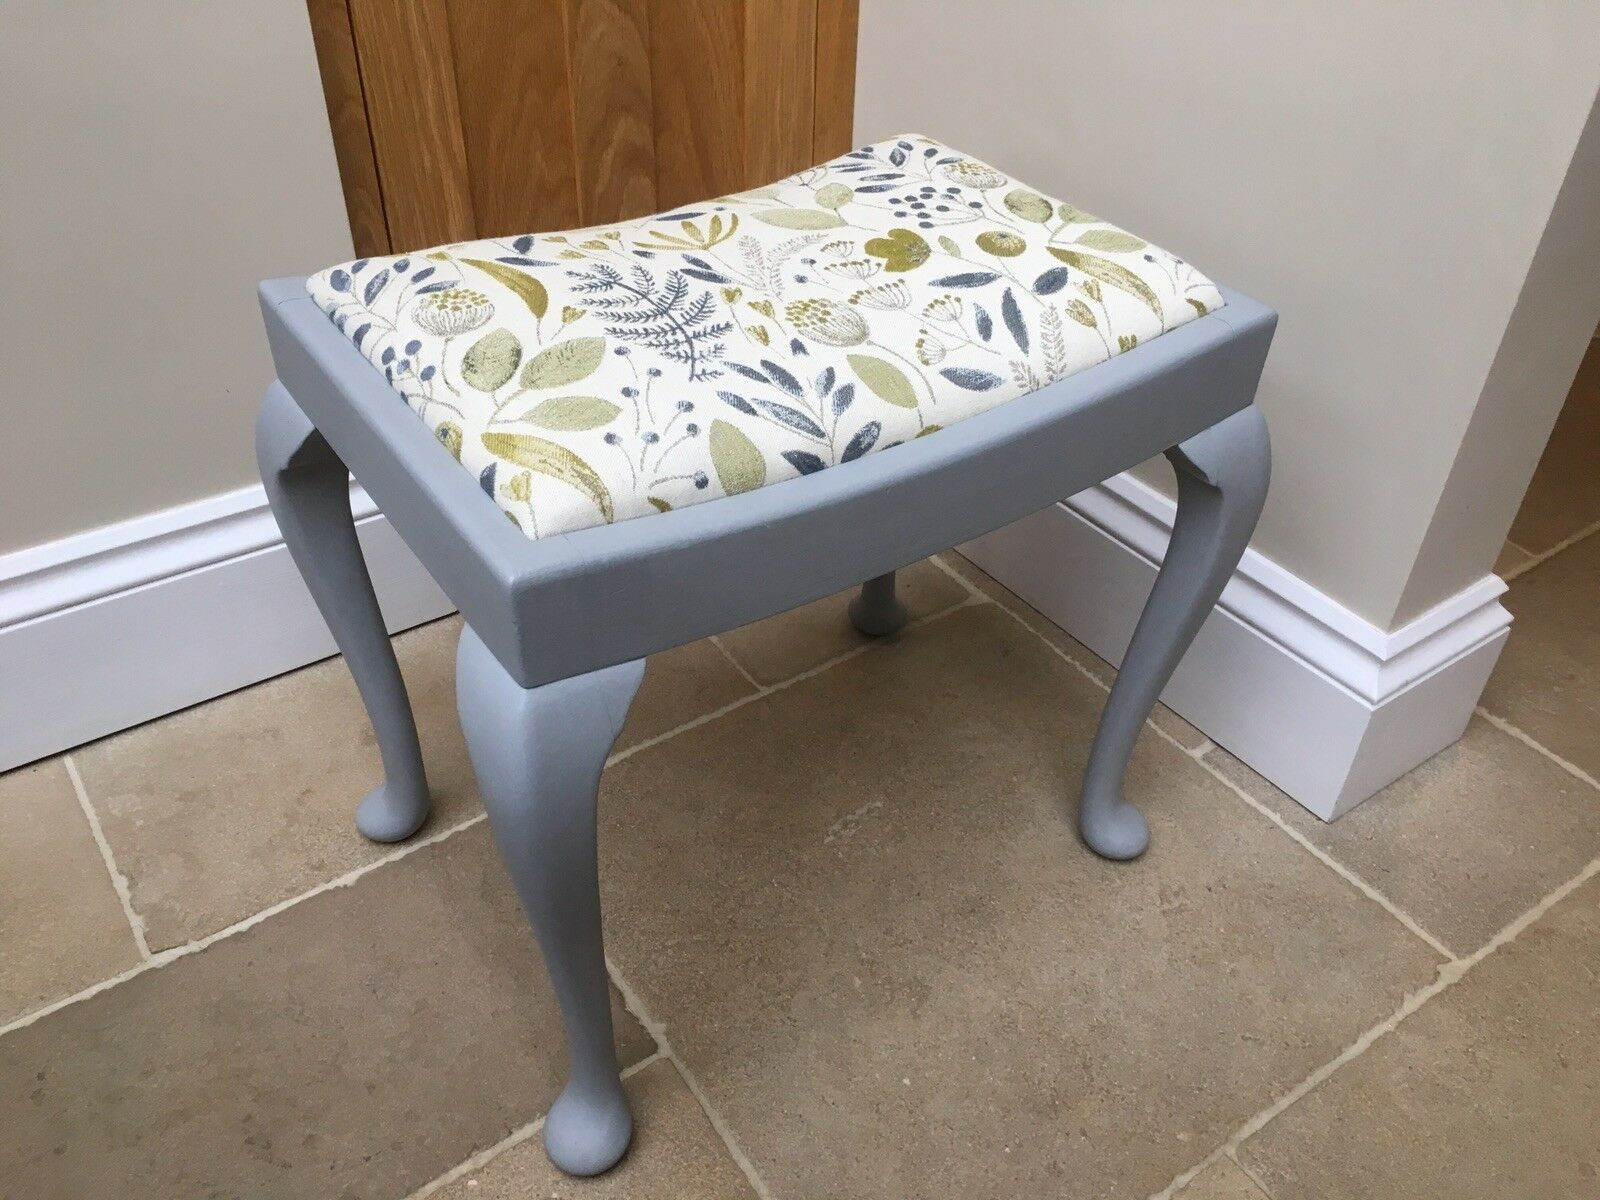 Vintage Dressing Table Stool With Queen Anne Legs In French Grey